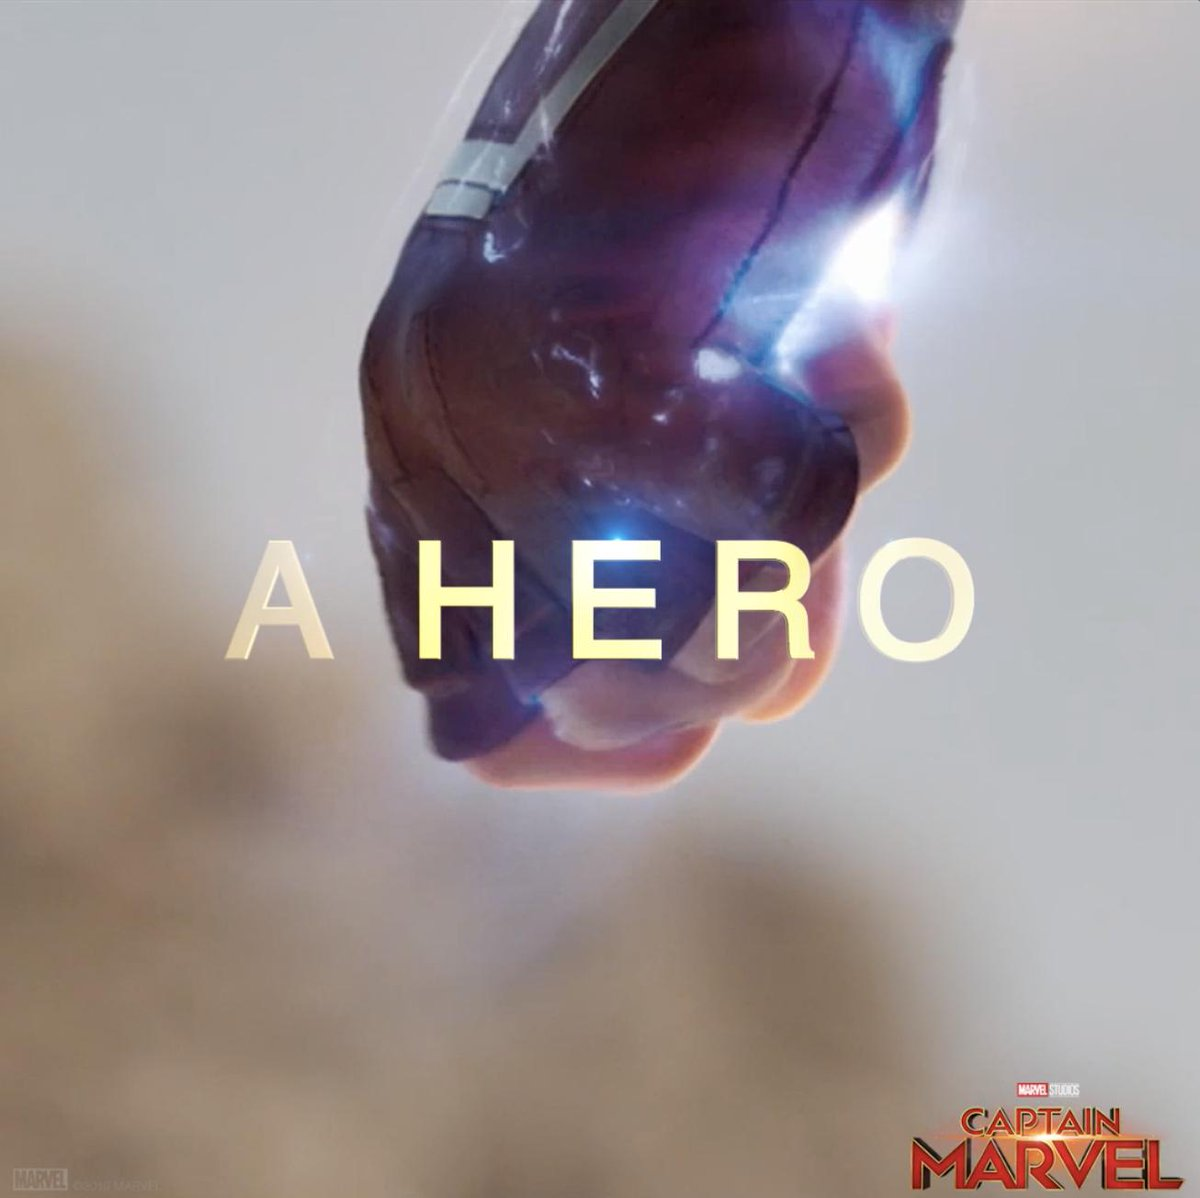 """""""I've never seen anything like her."""" See Marvel Studios' #CaptainMarvel in theaters March 8. Get tickets now: http://www.Fandango.com/CaptainMarvel"""